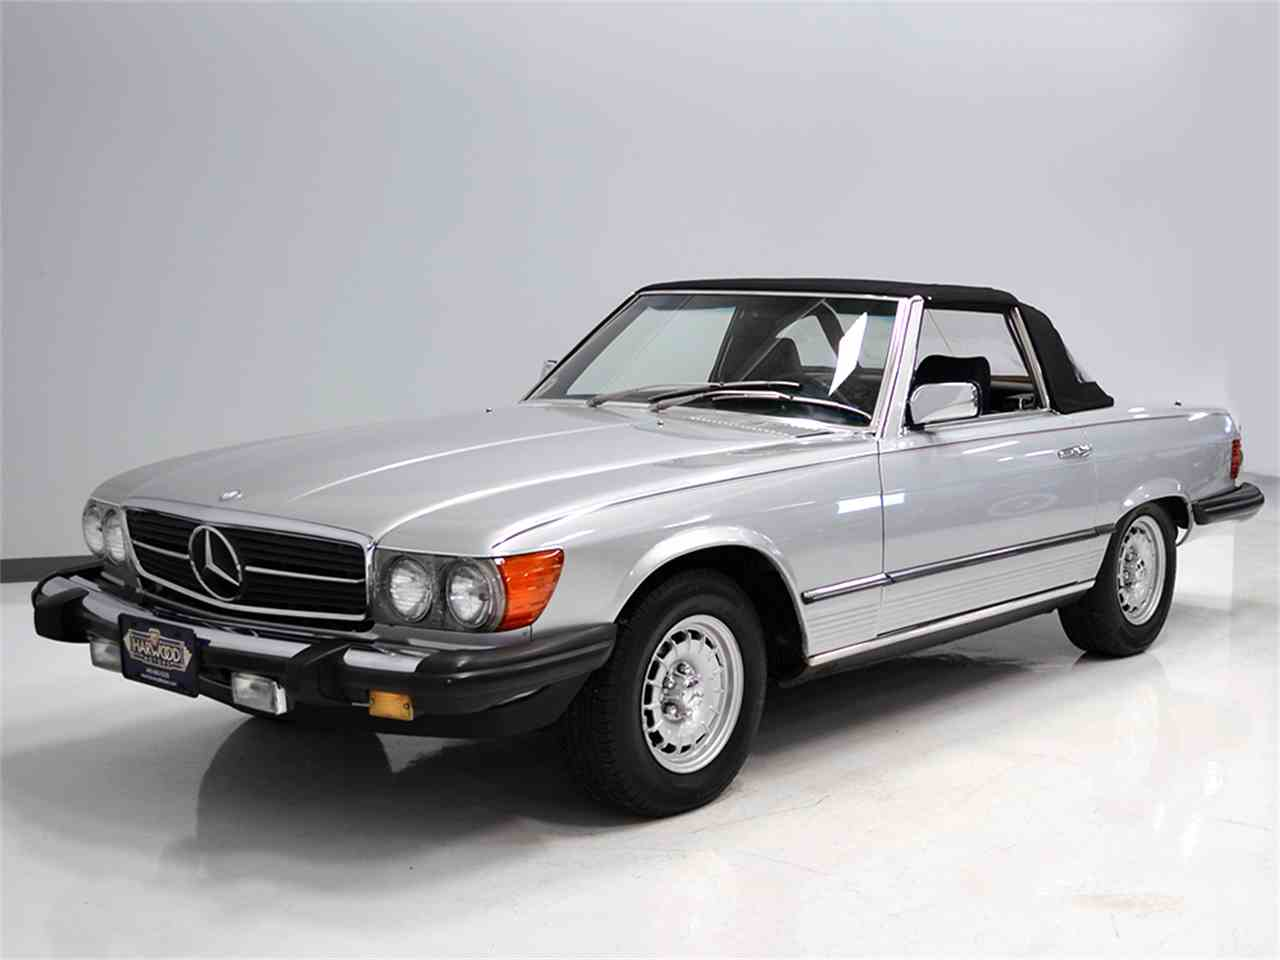 1984 mercedes benz 380sl for sale cc for Mercedes benz ohio